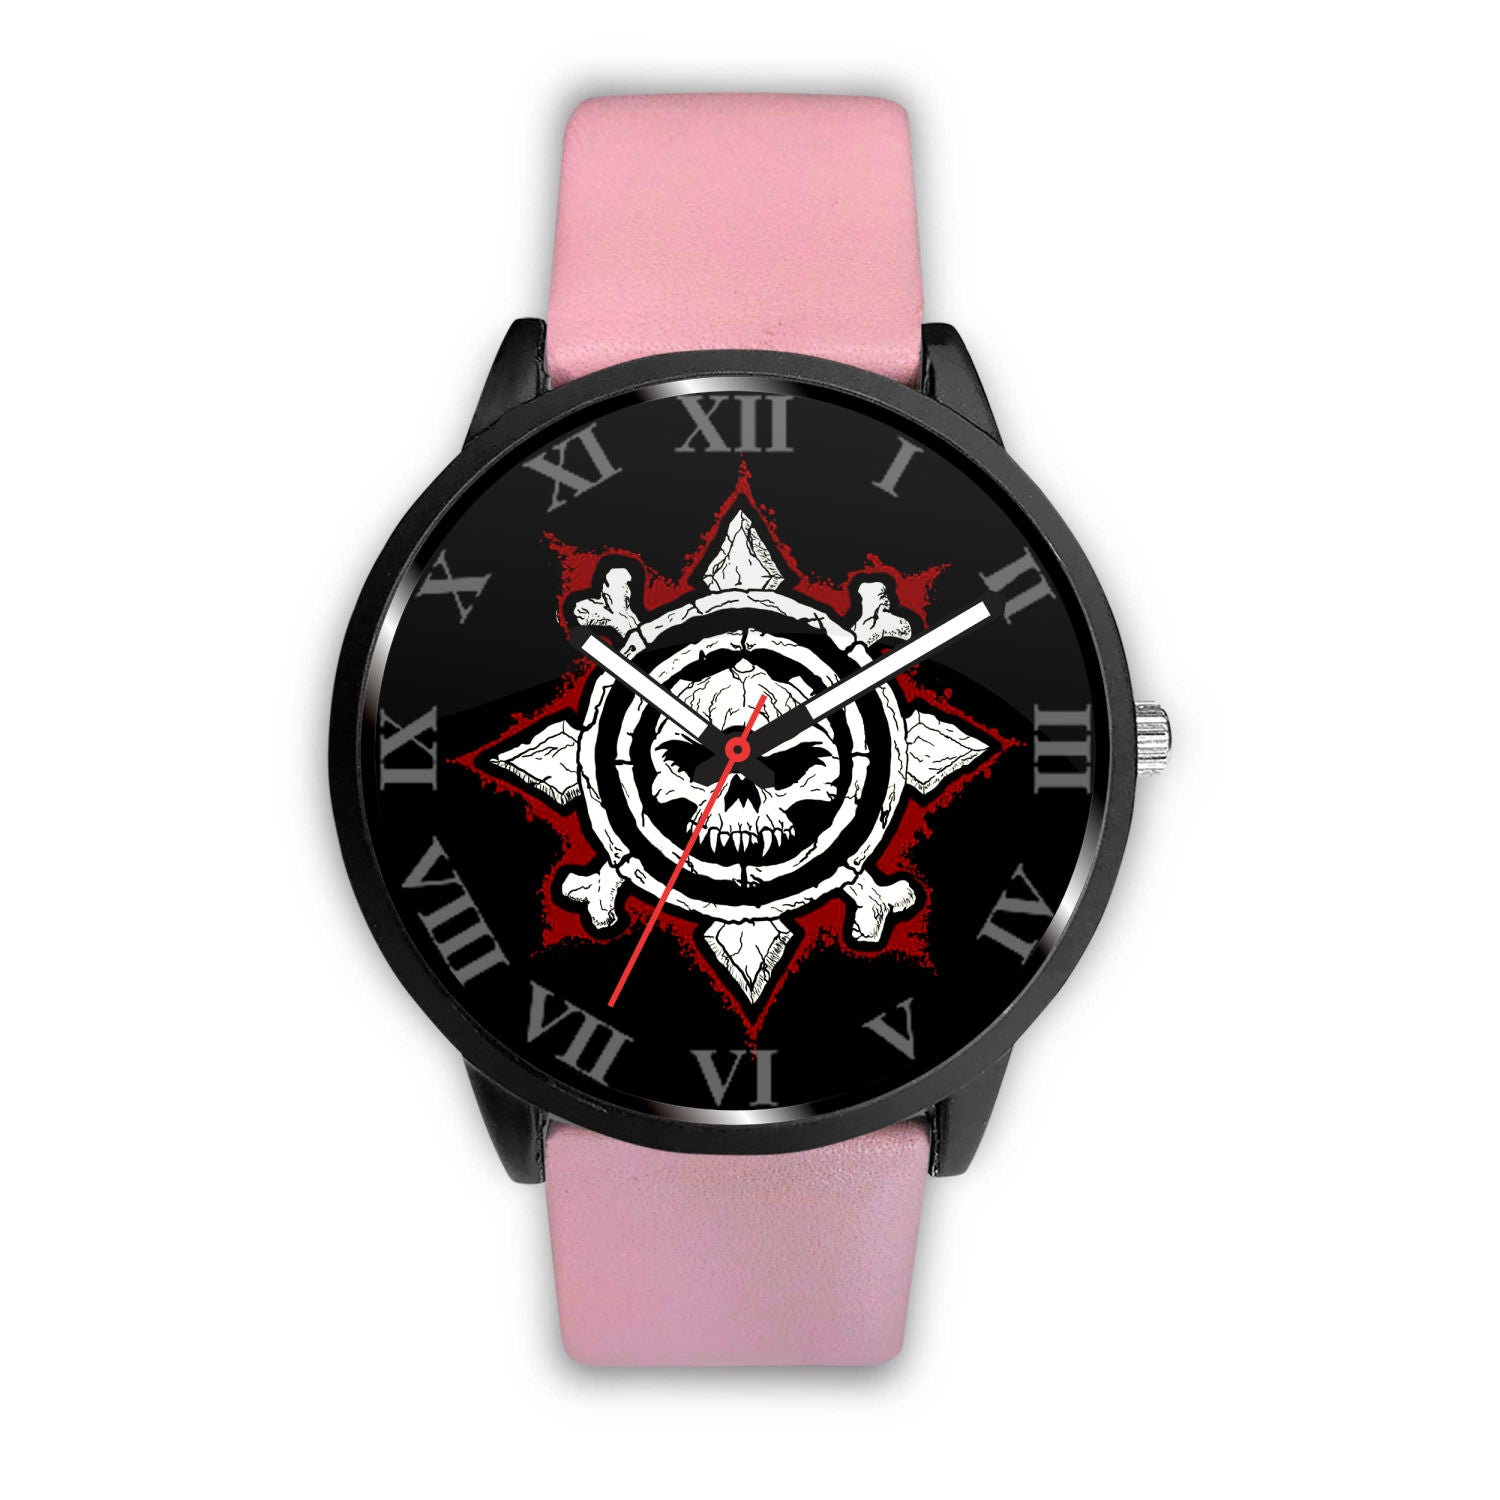 3D Skull Watch - Stainless steel back with leather/ stainless steel band 003 - designfullprint